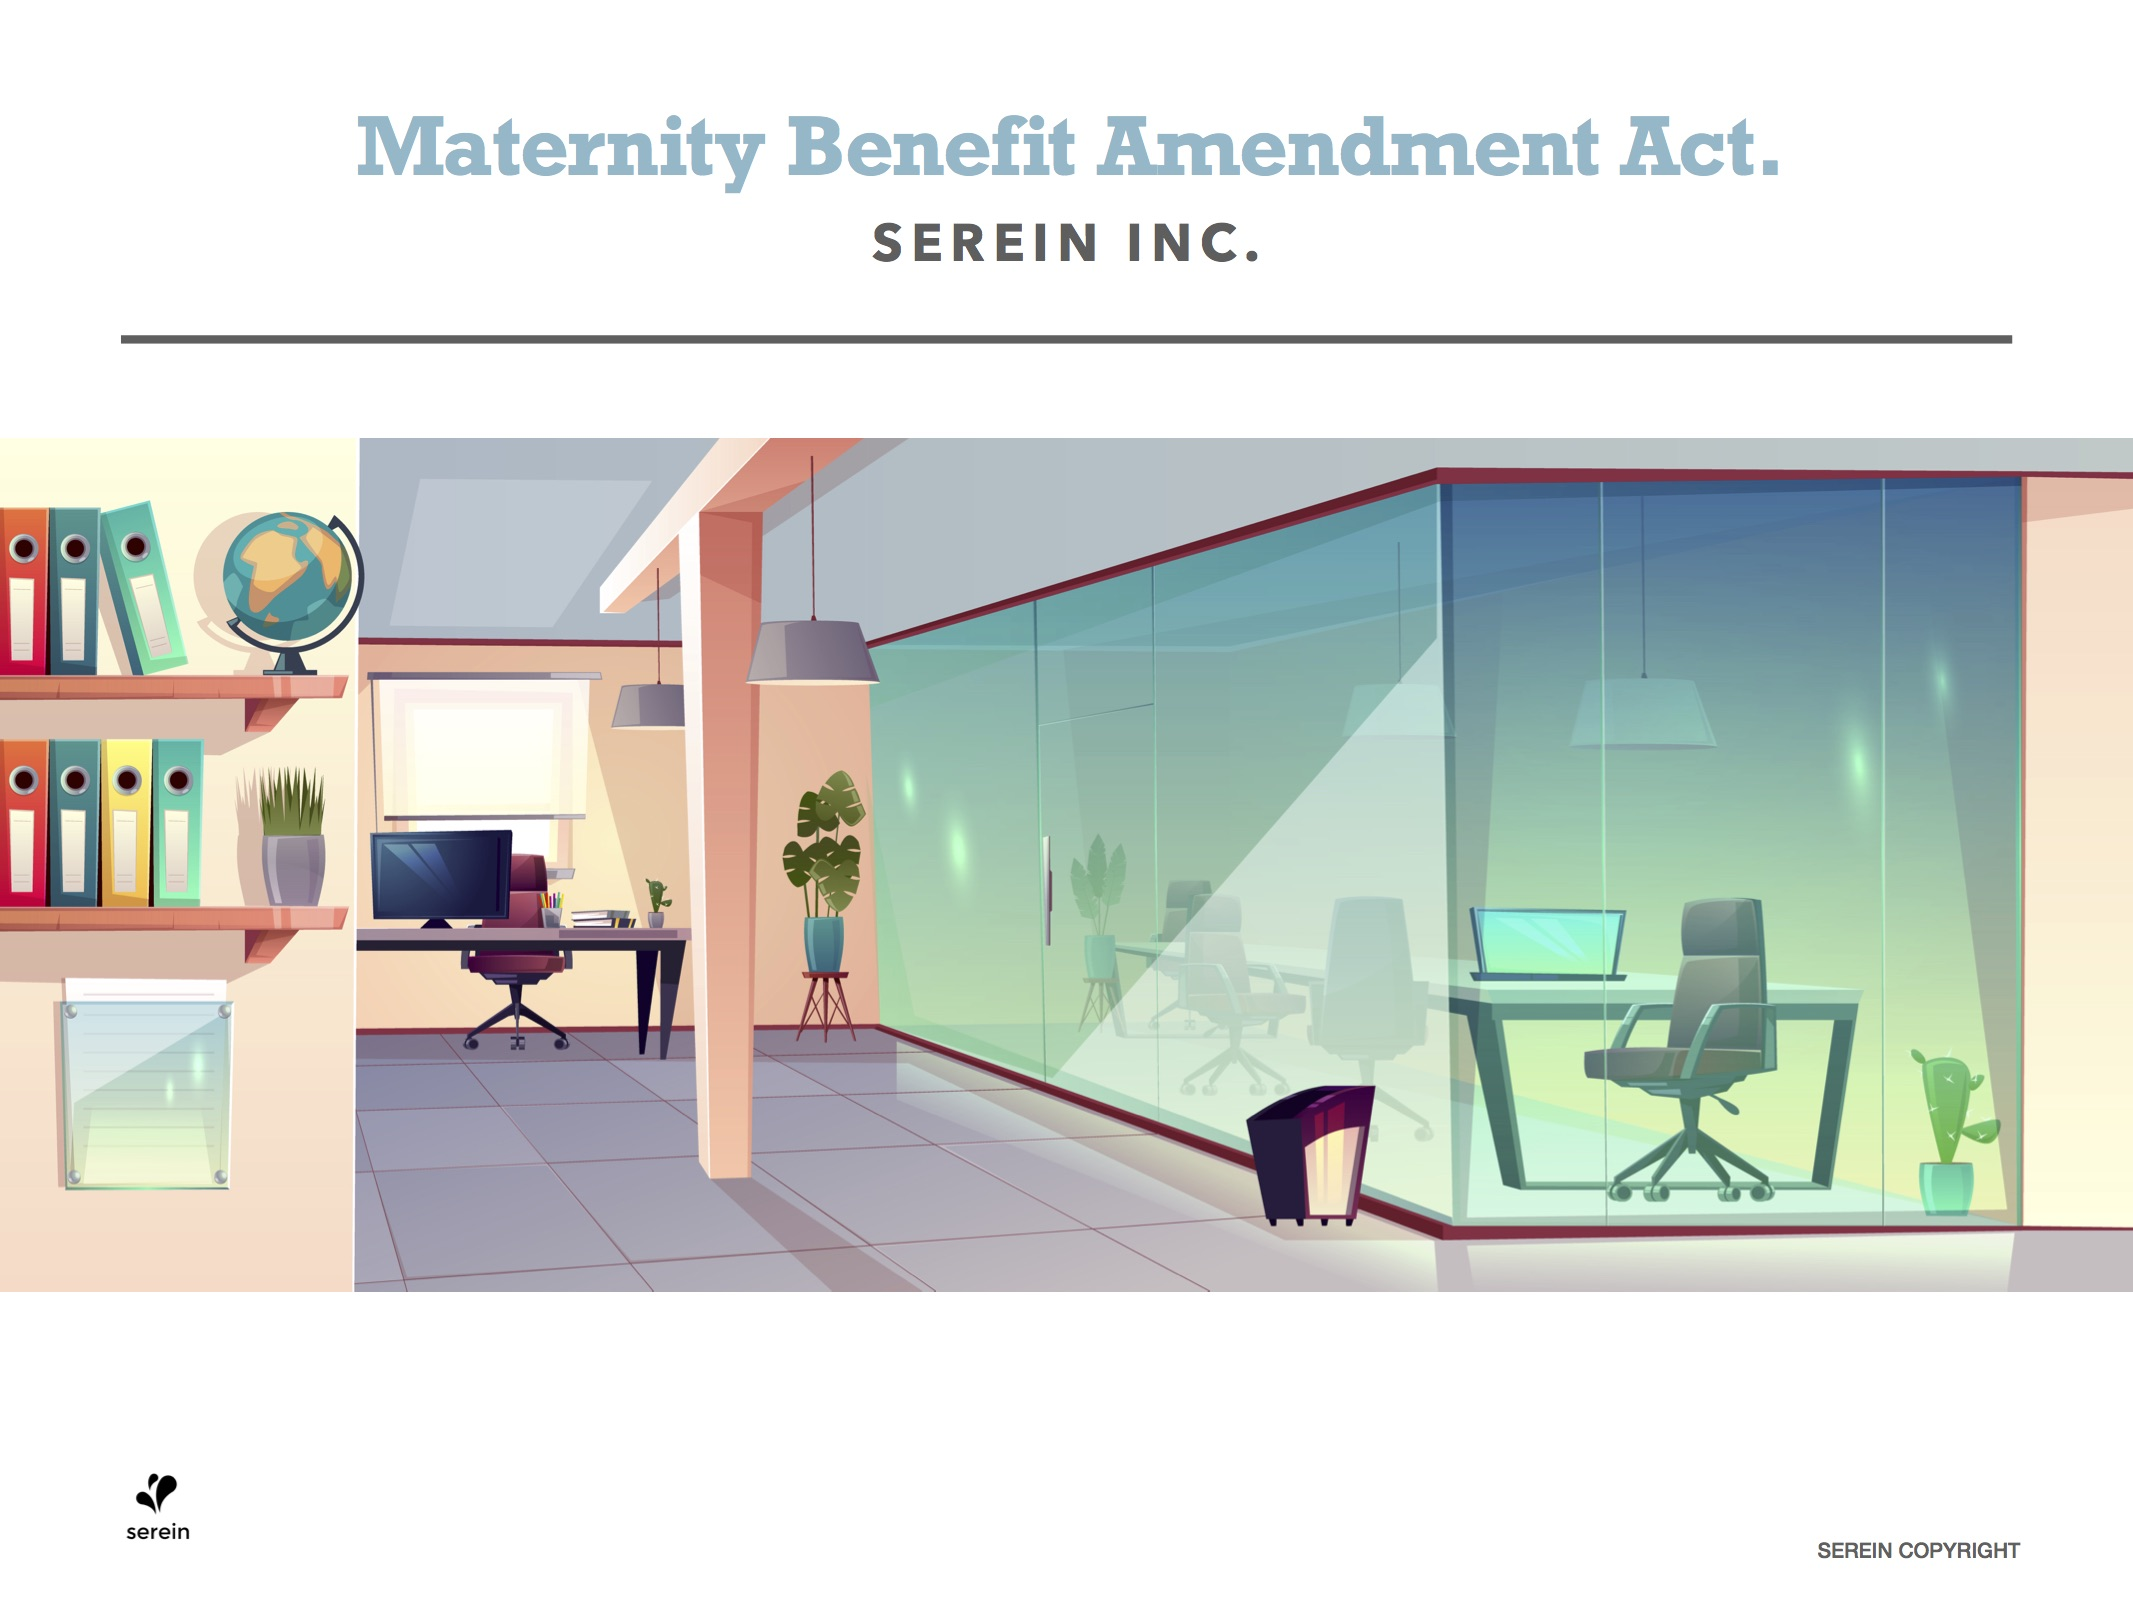 Serein_maternity_policy_snippet.jpg